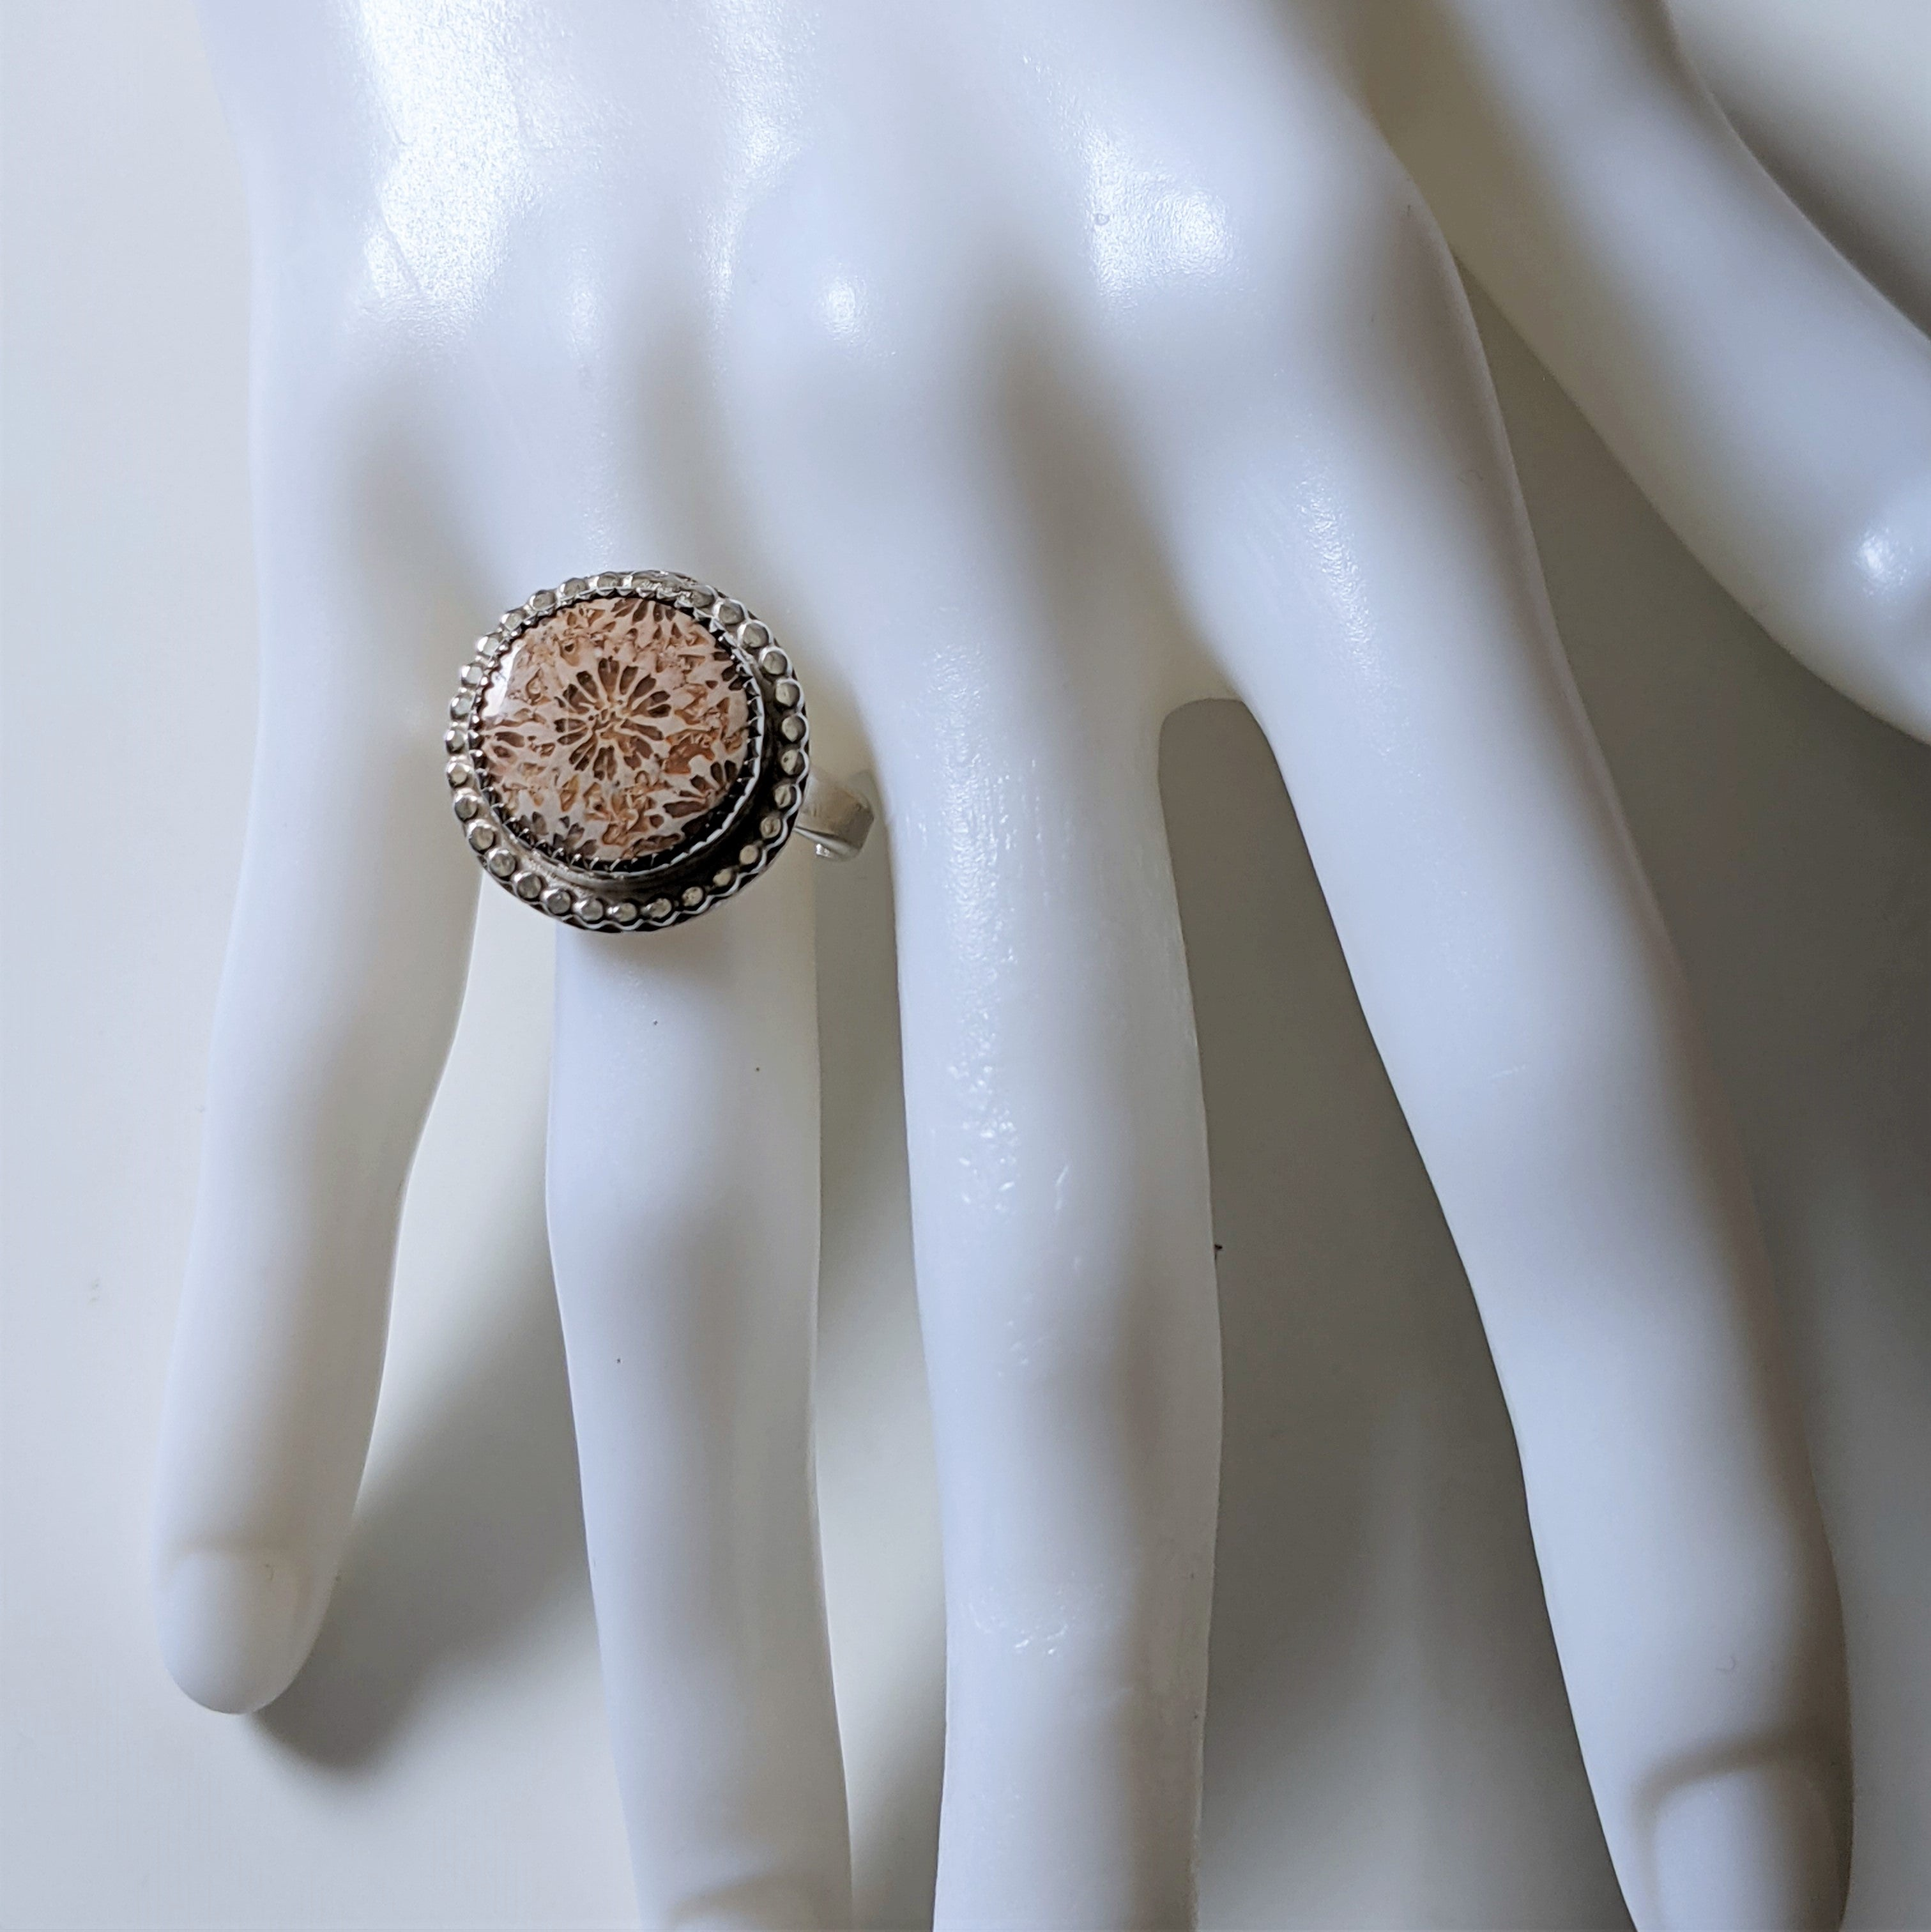 Fossil Coral Ring in Sterling Silver with Beaded Edge - Adjustable Ring in Neutral Colors